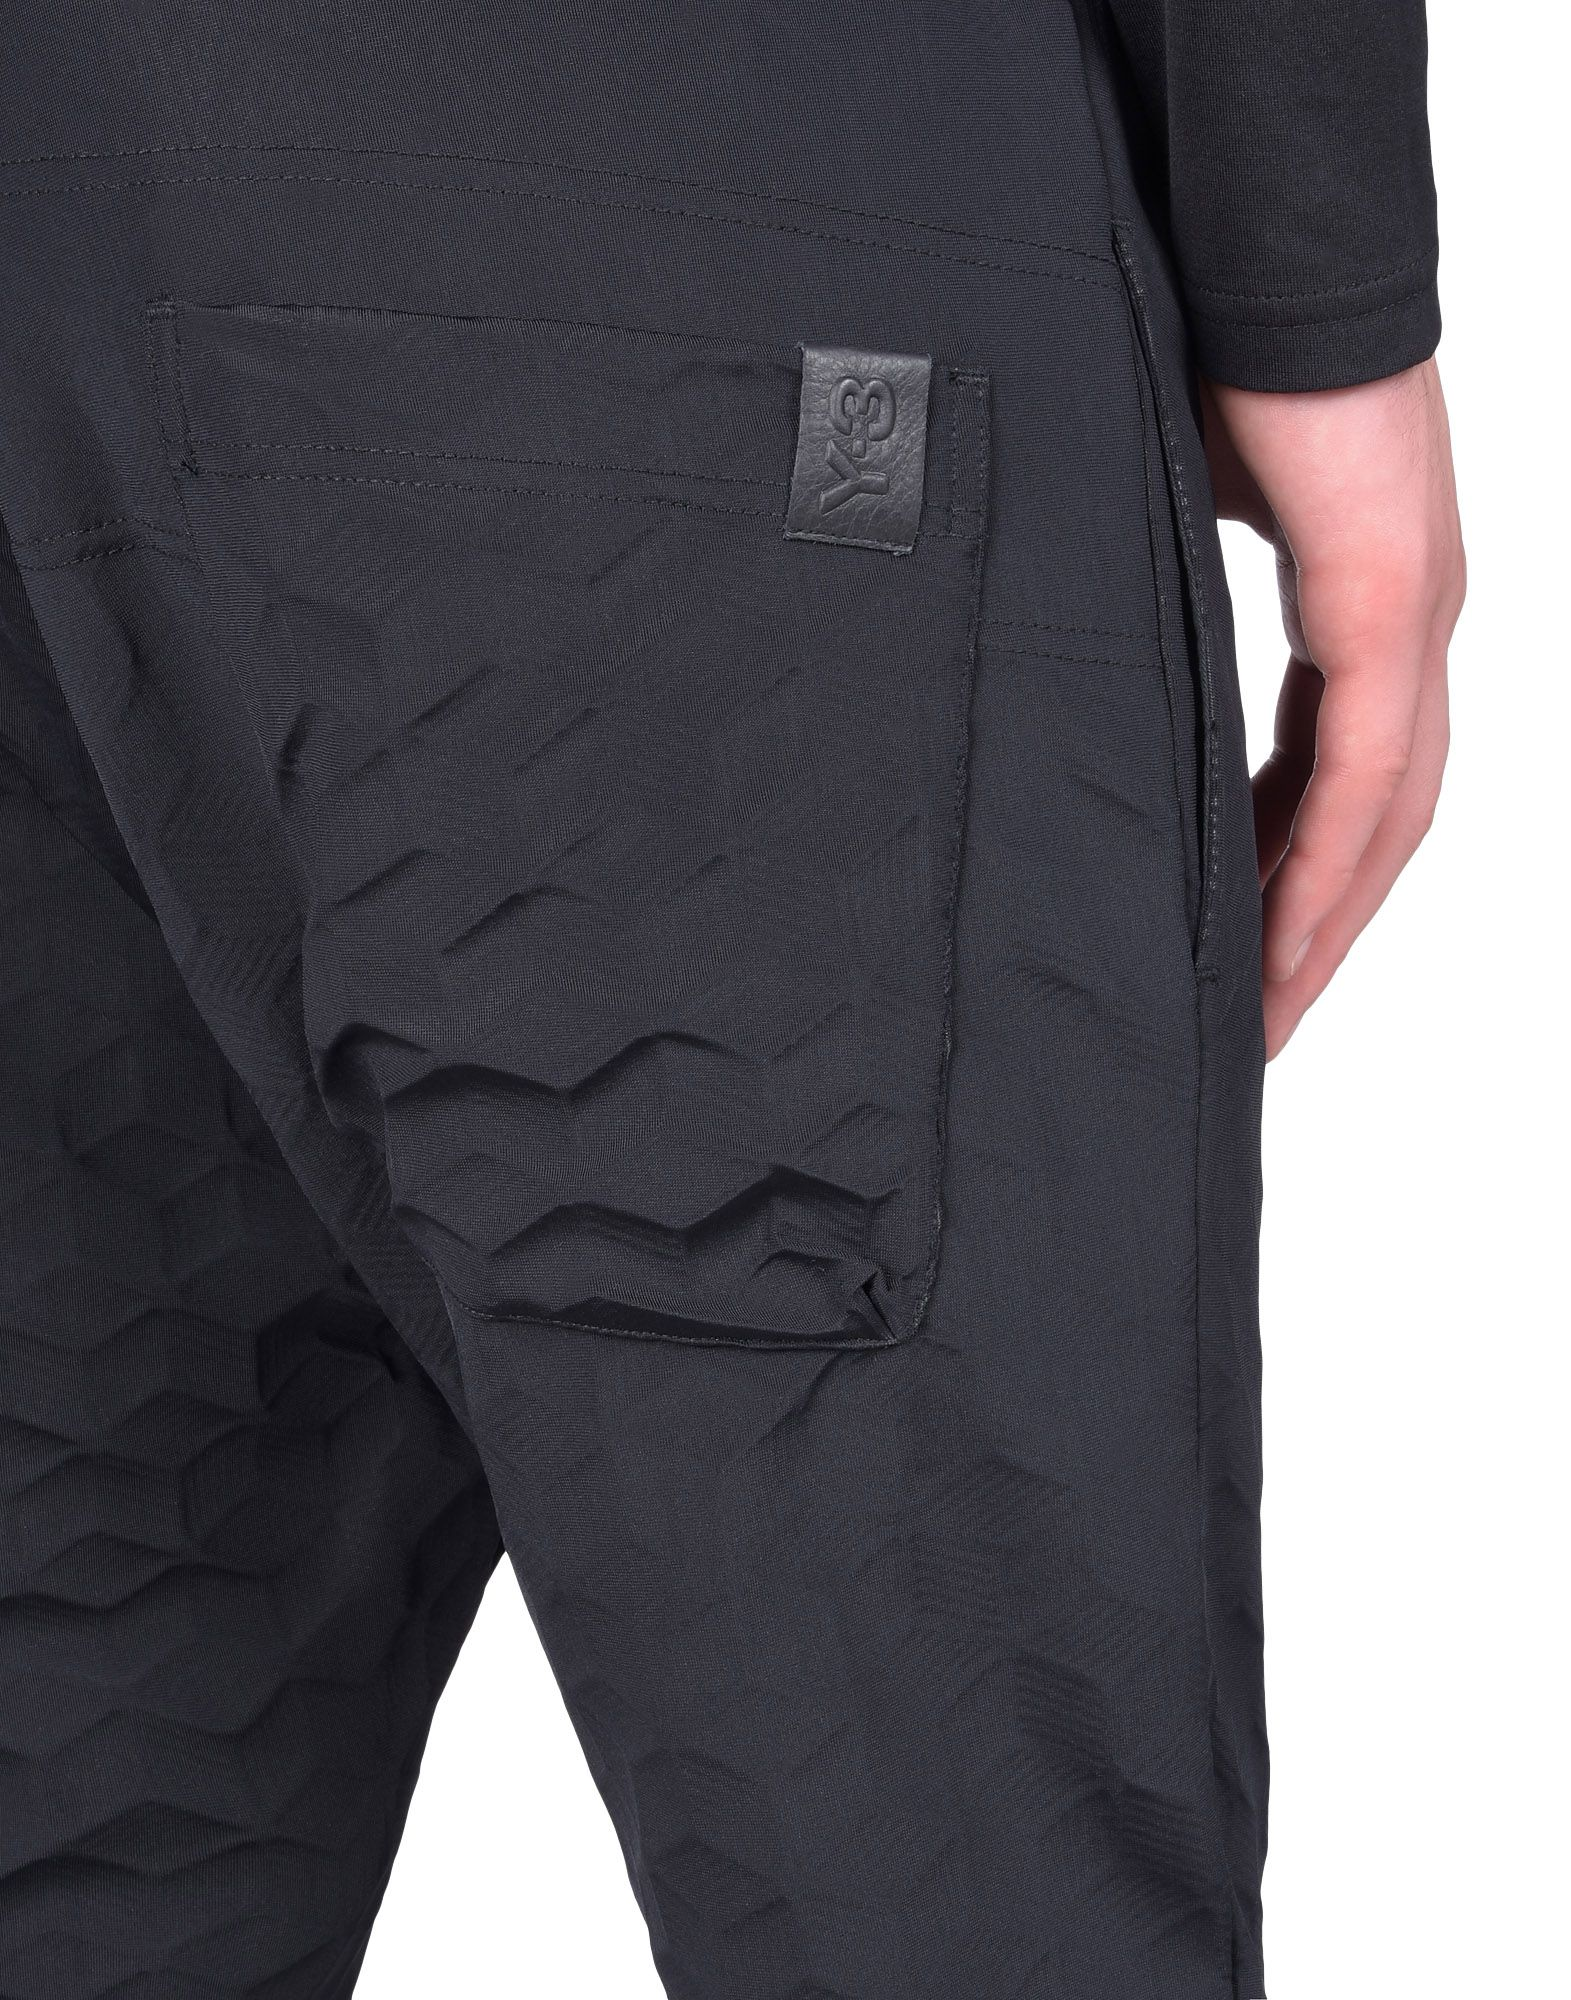 Y SPACE TRACK PANT For Men Adidas Y Official Store - Space track